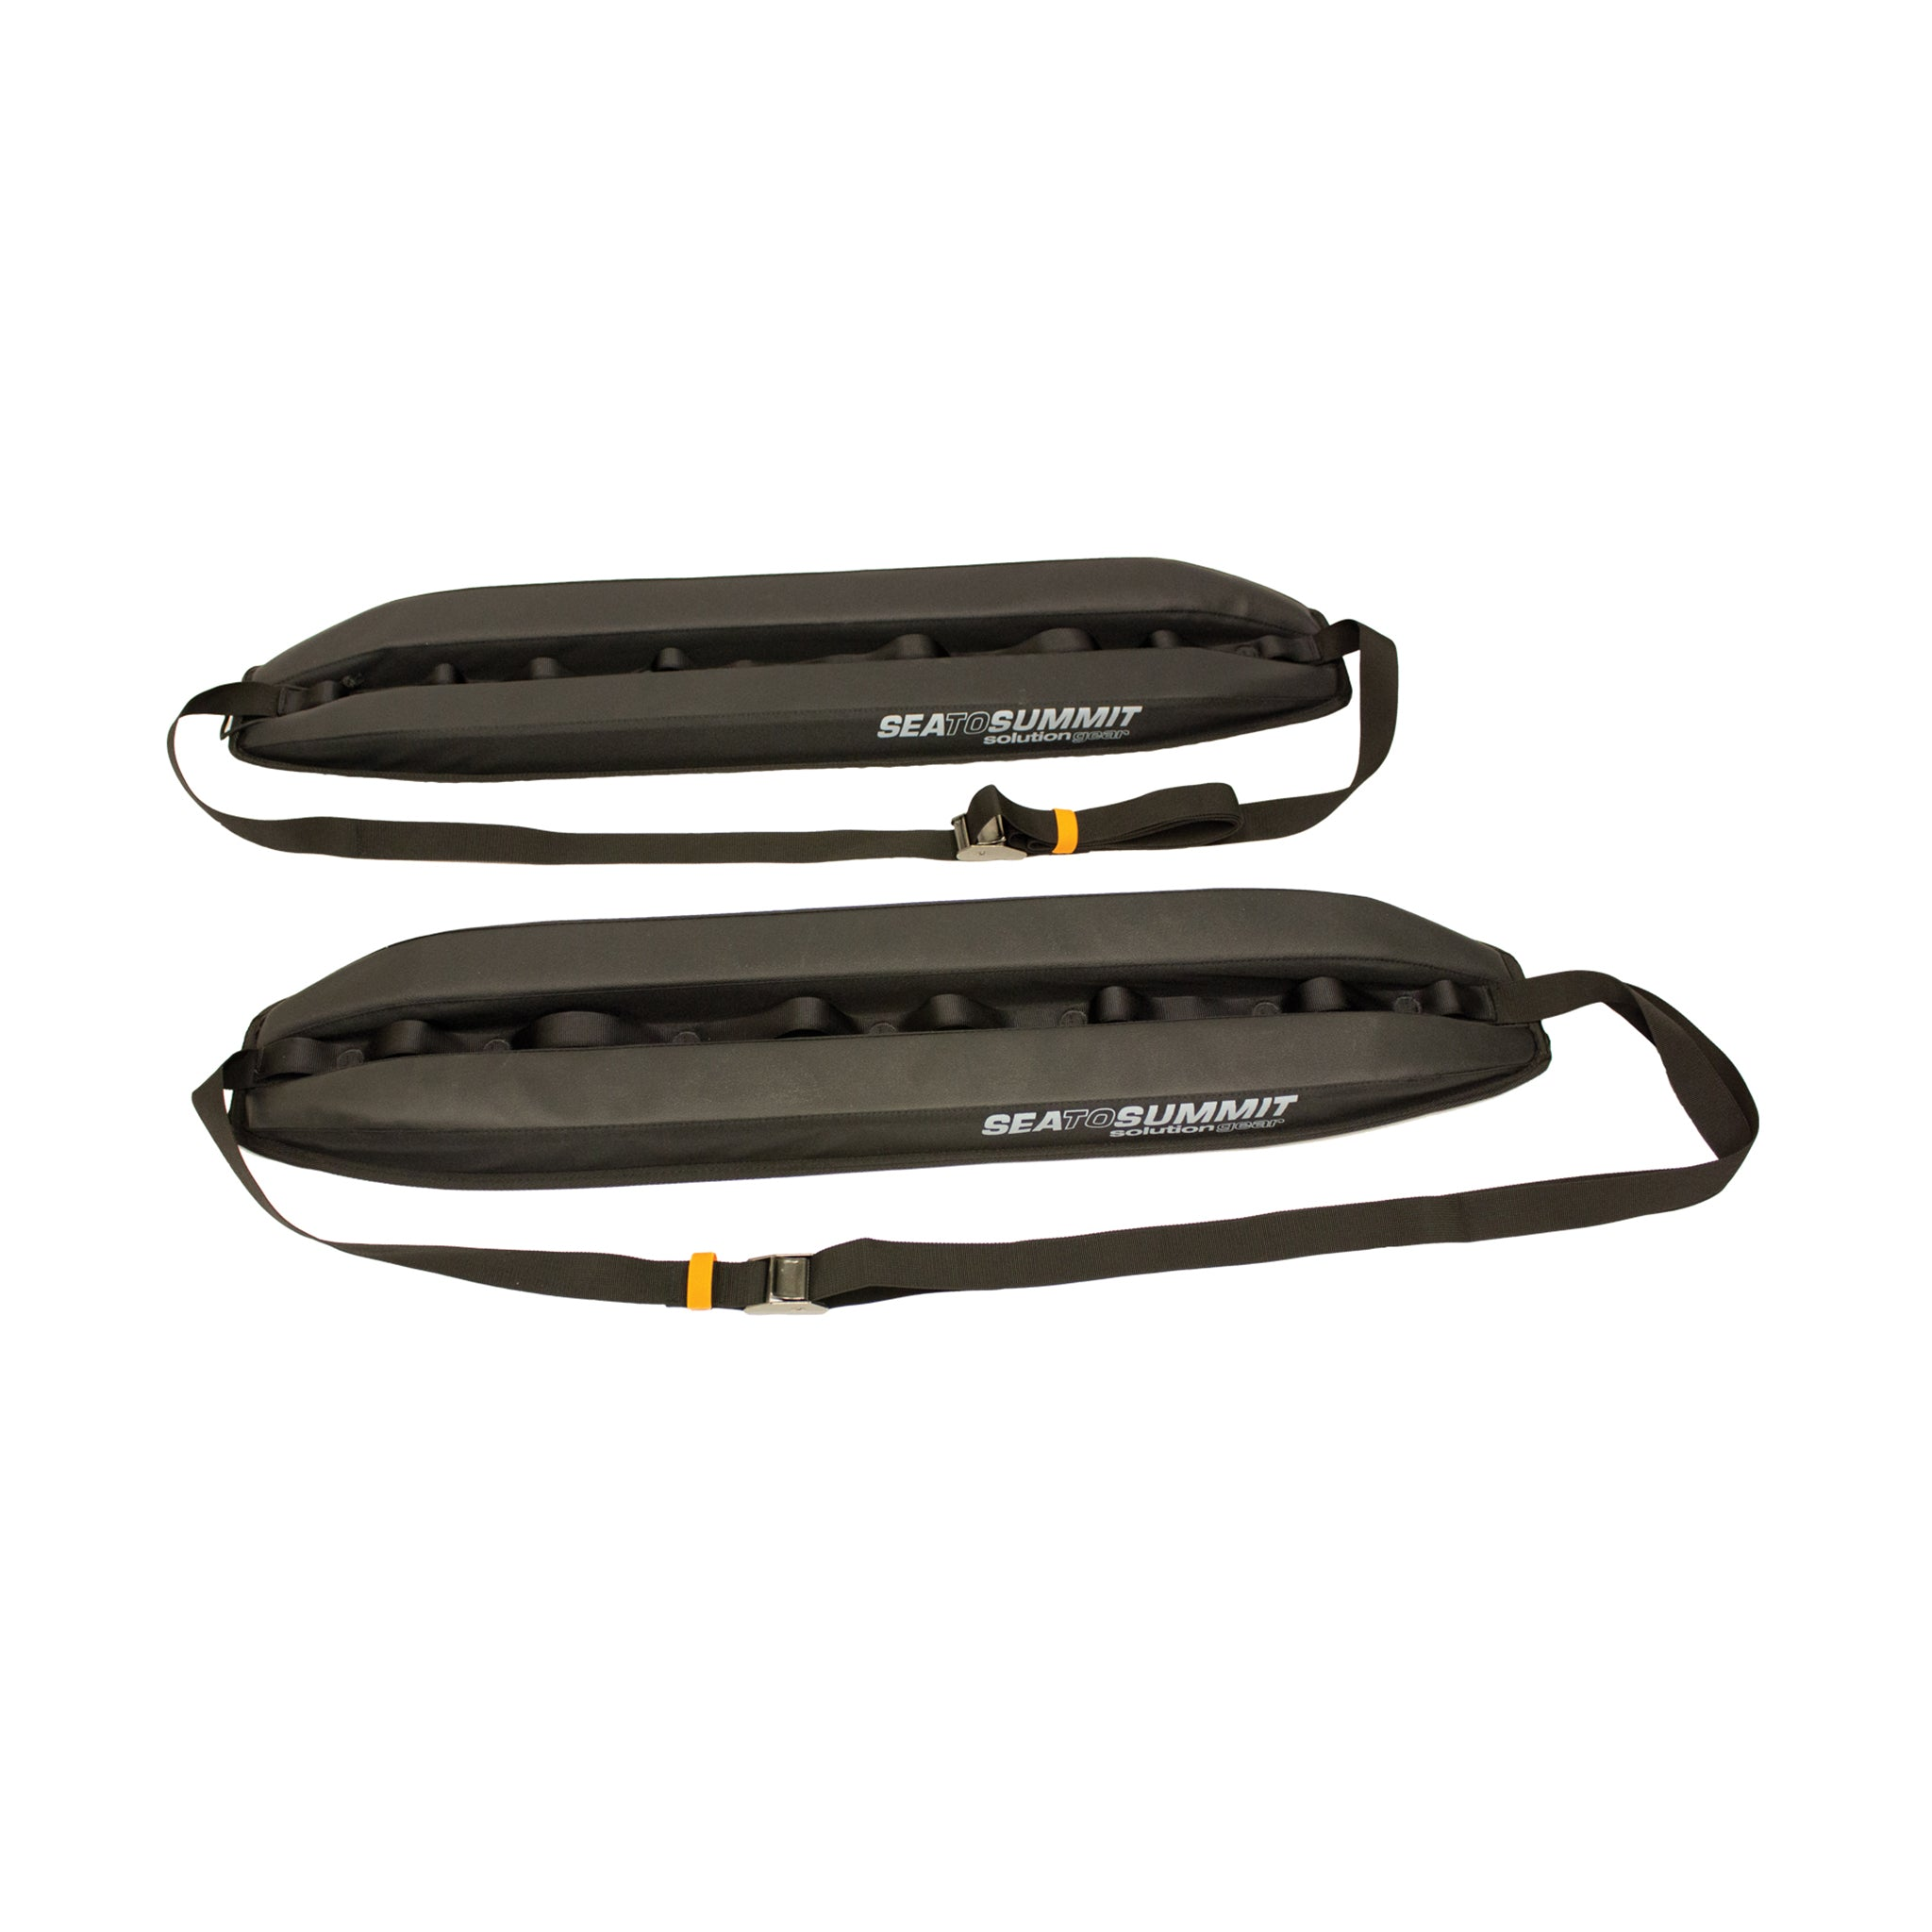 Traveller Soft Car Rack _ kayak canoe and SUP